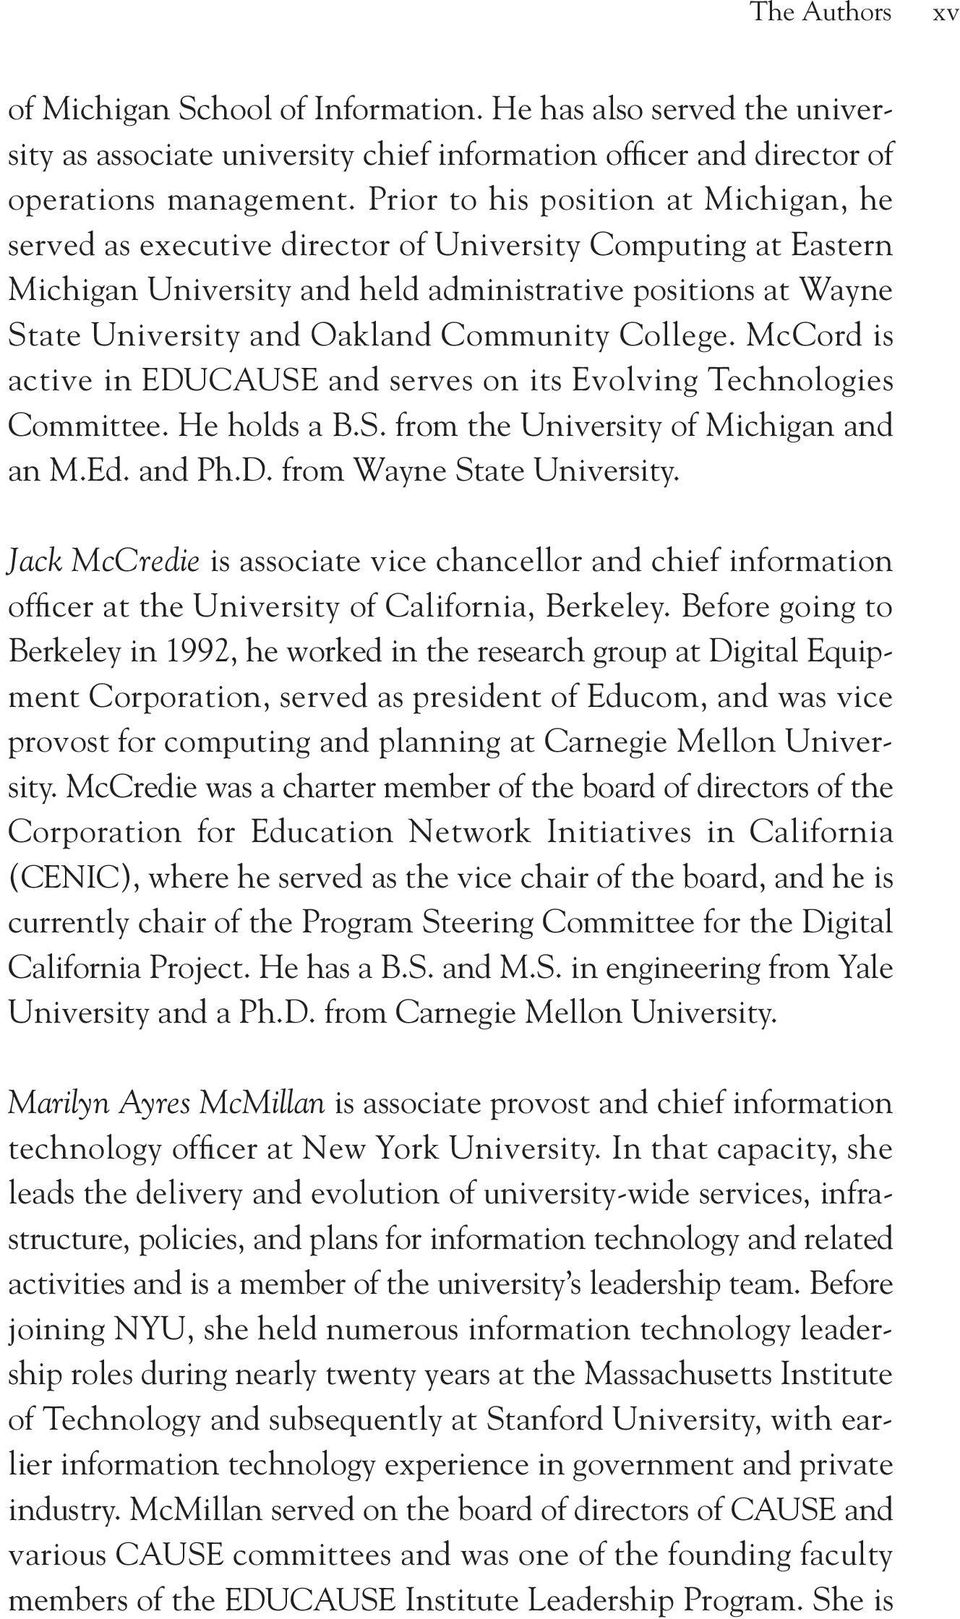 Community College. McCord is active in EDUCAUSE and serves on its Evolving Technologies Committee. He holds a B.S. from the University of Michigan and an M.Ed. and Ph.D. from Wayne State University.